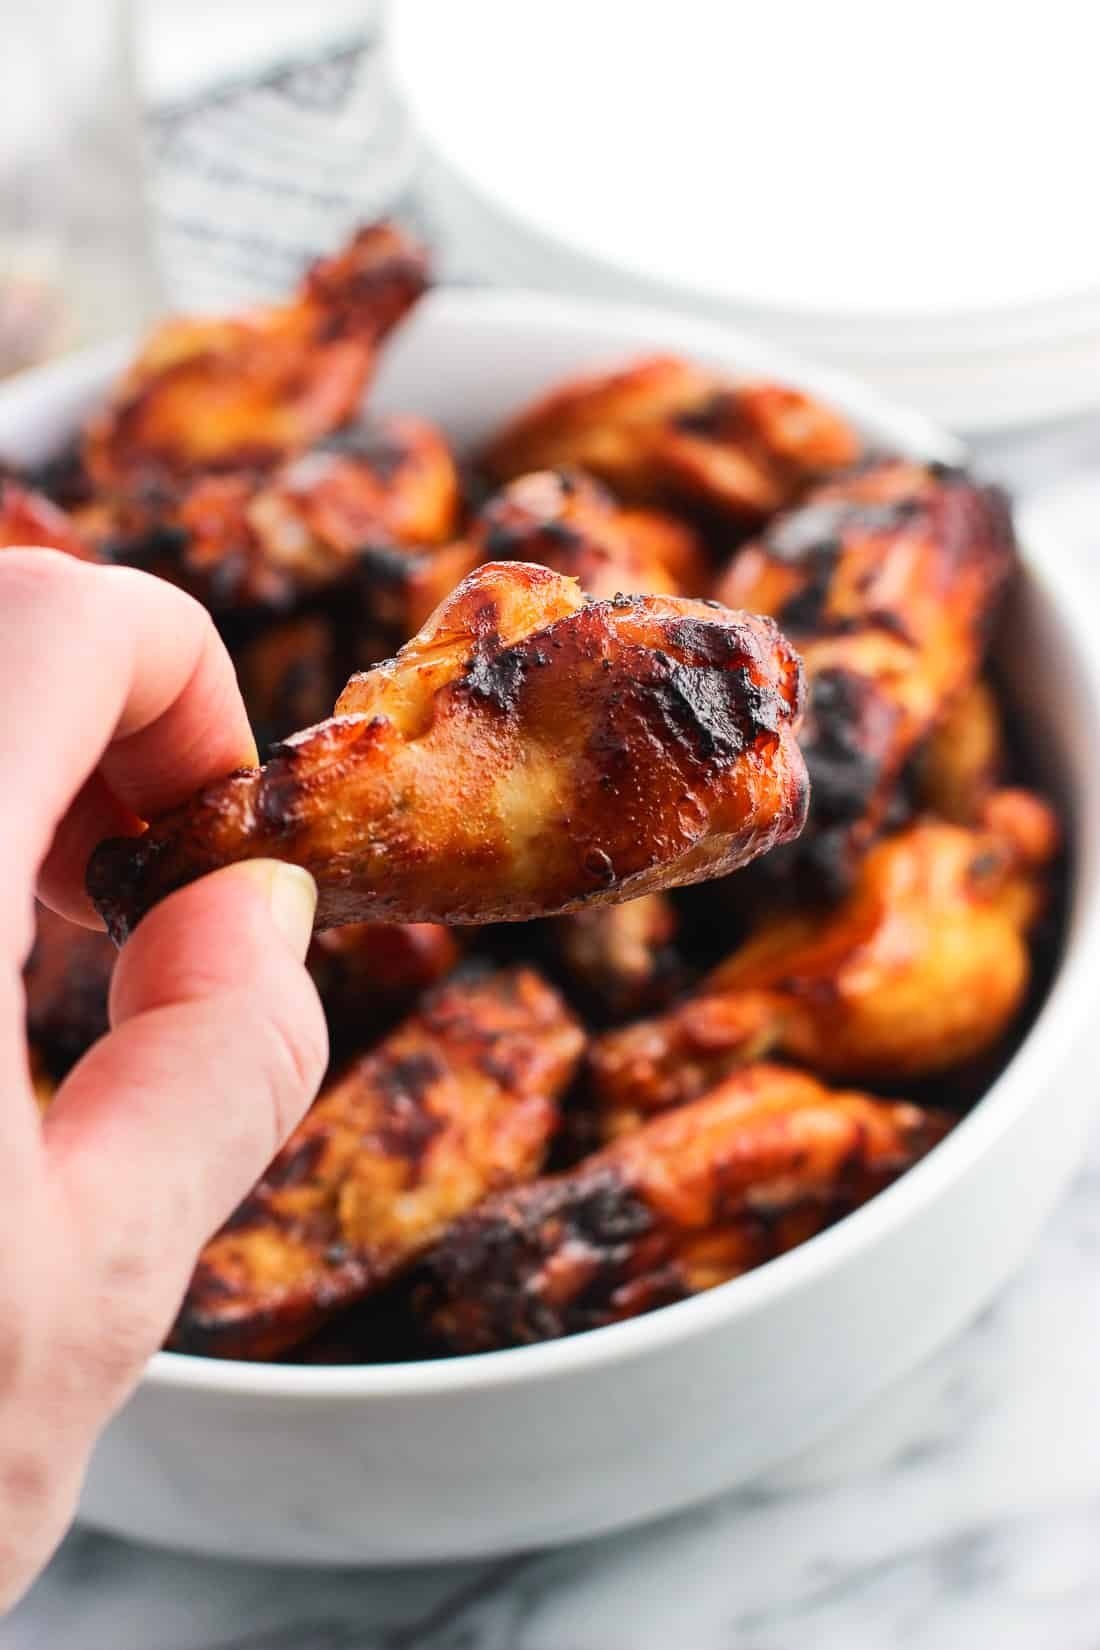 These Spicy Soy Chicken Wings are marinated in a mix of pantry staples and then grilled for a juicy and flavorful main dish or appetizer.